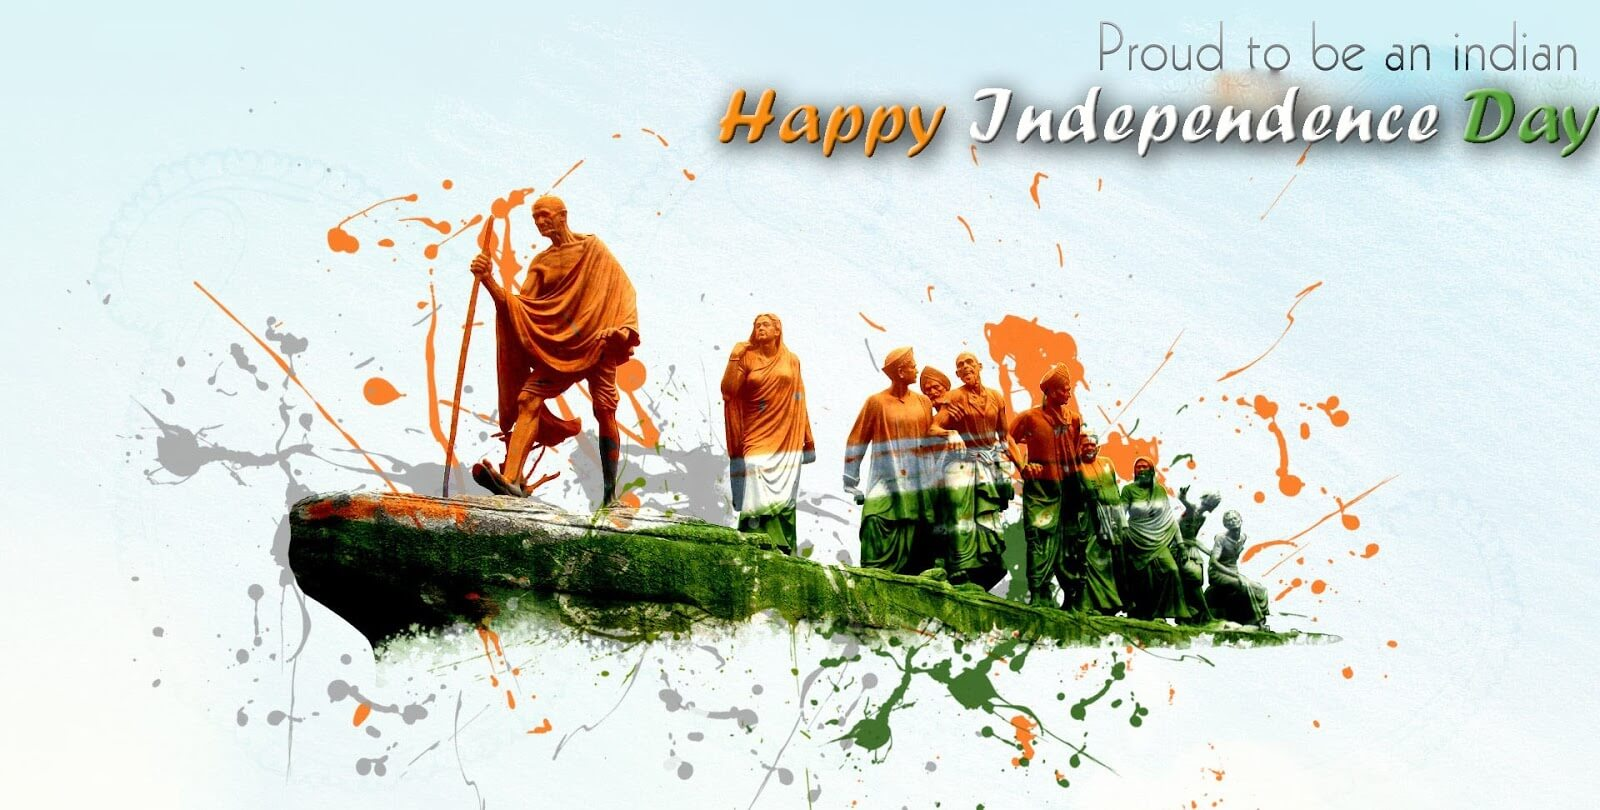 happy independence day wallpaper image with Gandhi